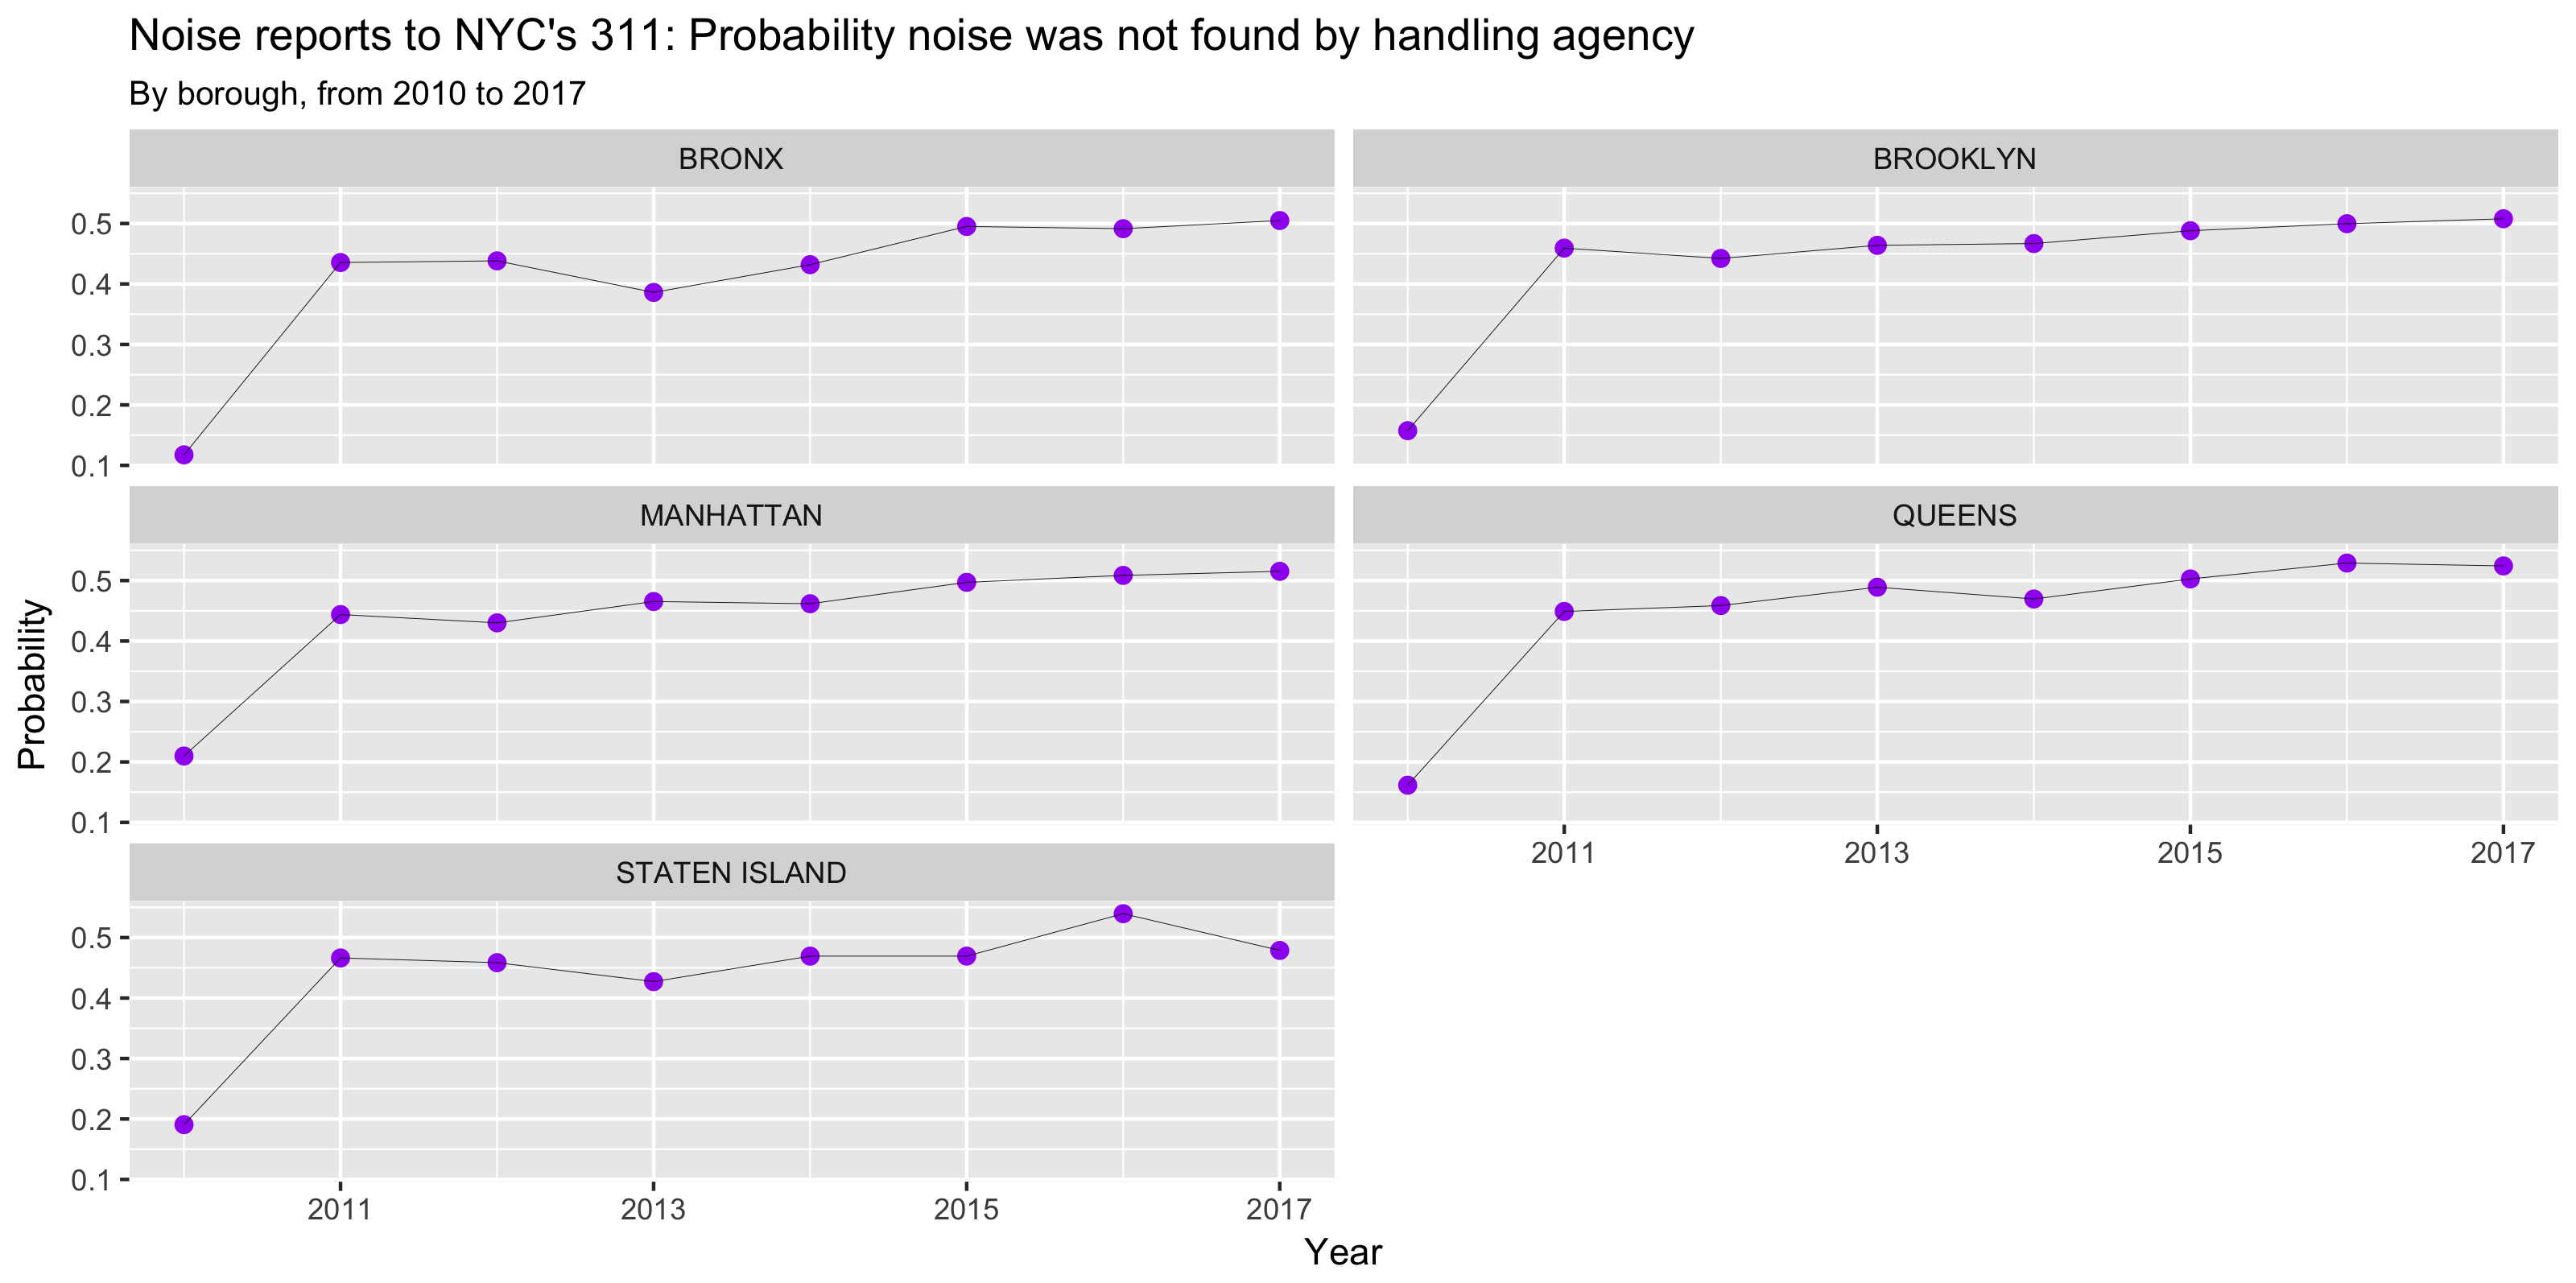 Probability noise not found, by boro. 2004 to 2017